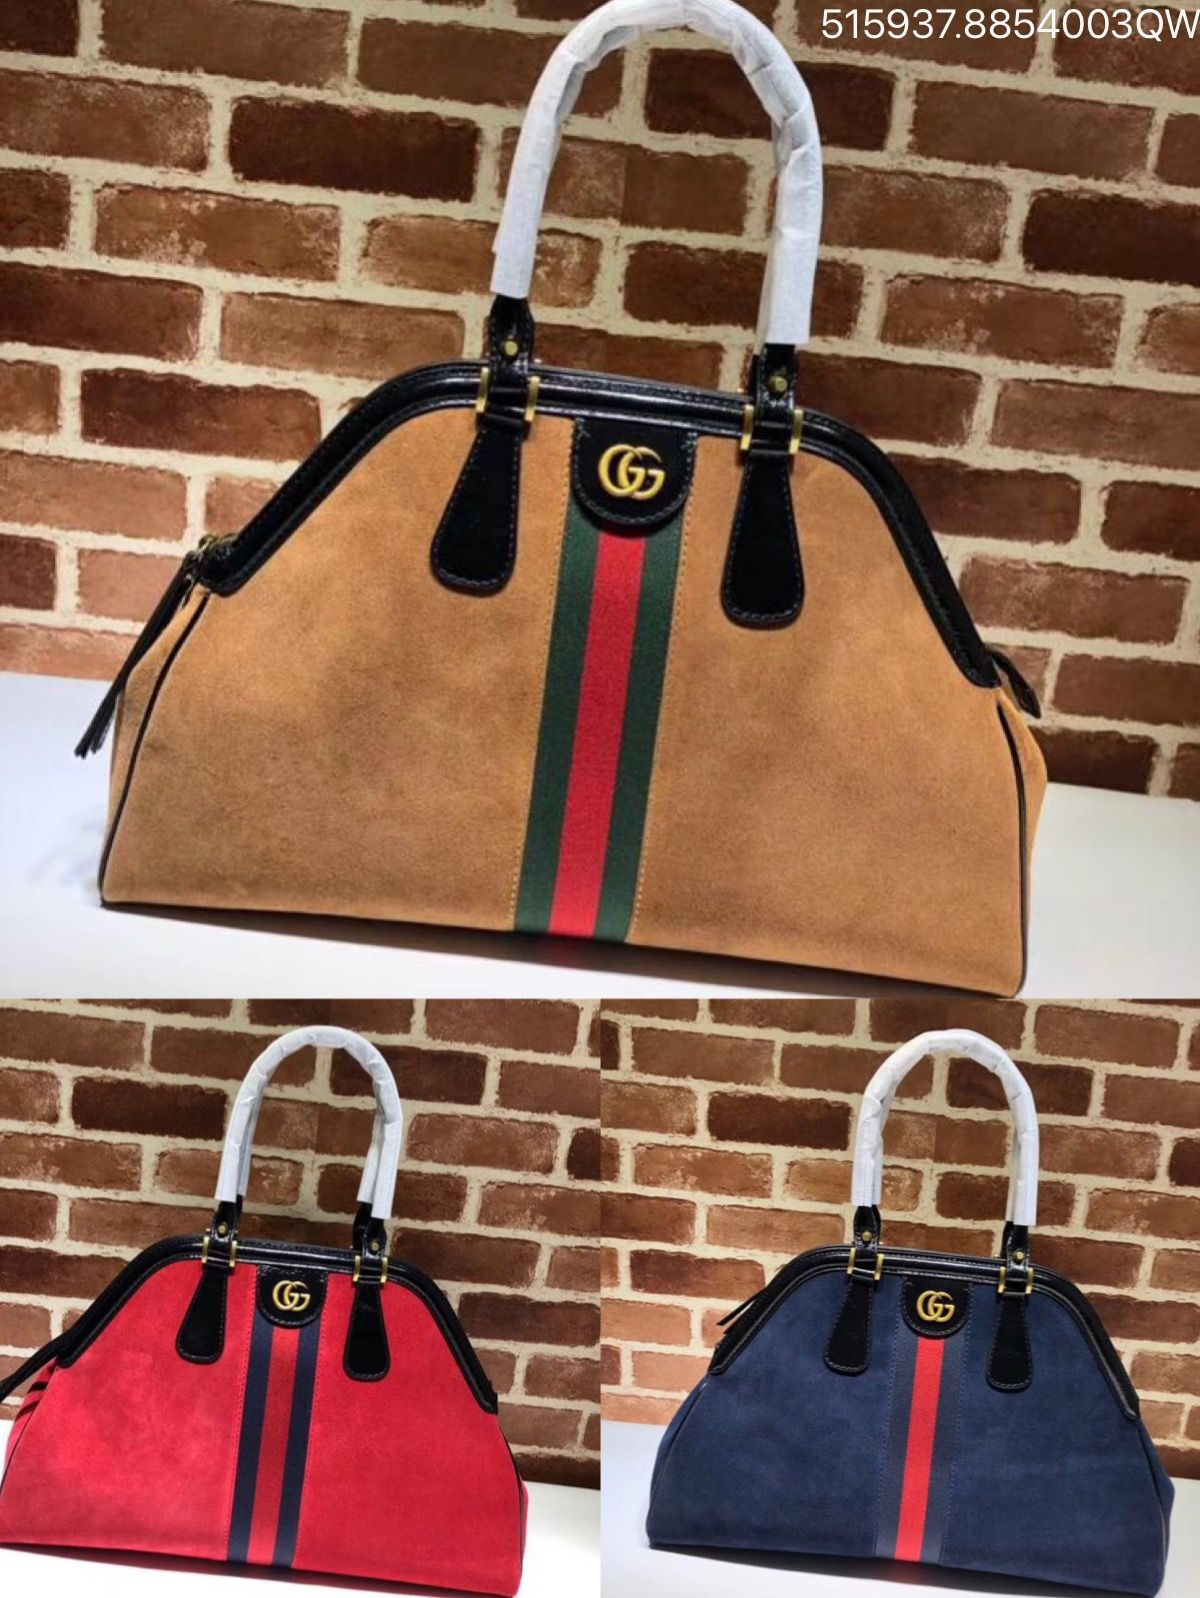 cb9513c82204 Gucci rebelle large top handle tote bag suede totes 515937 | Gucci ...